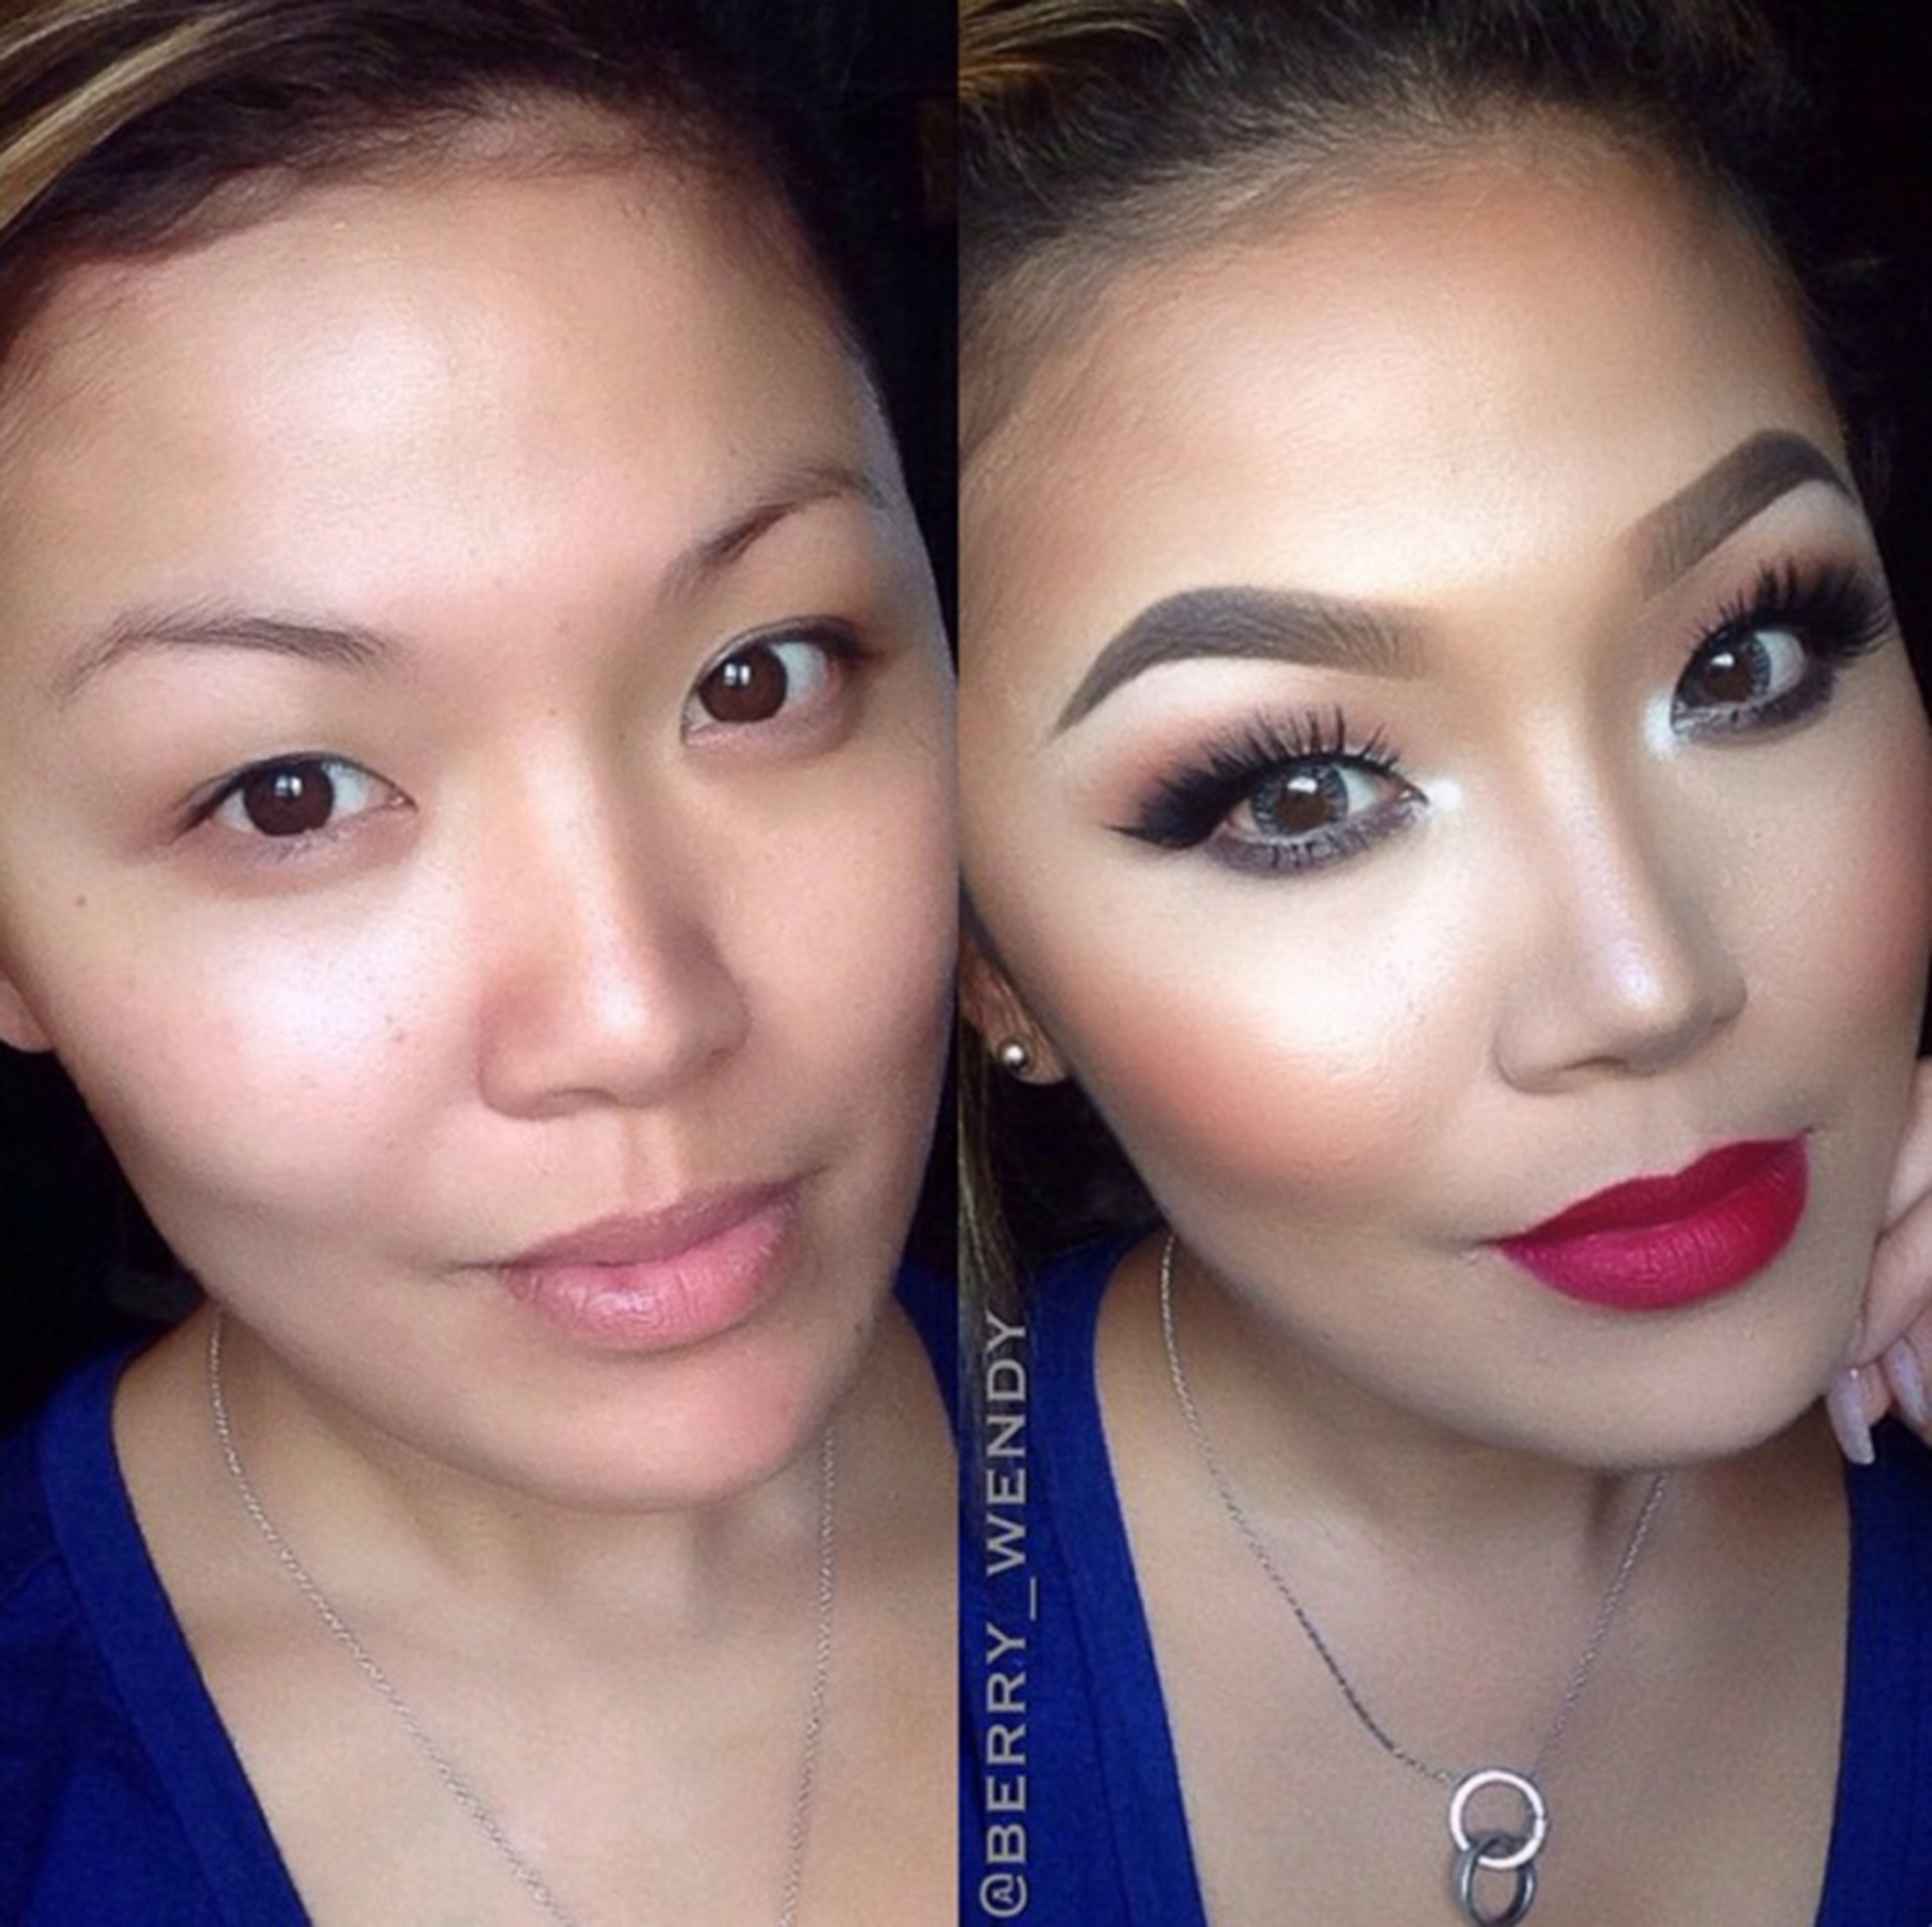 16 Before And After Makeup Transformations Photos